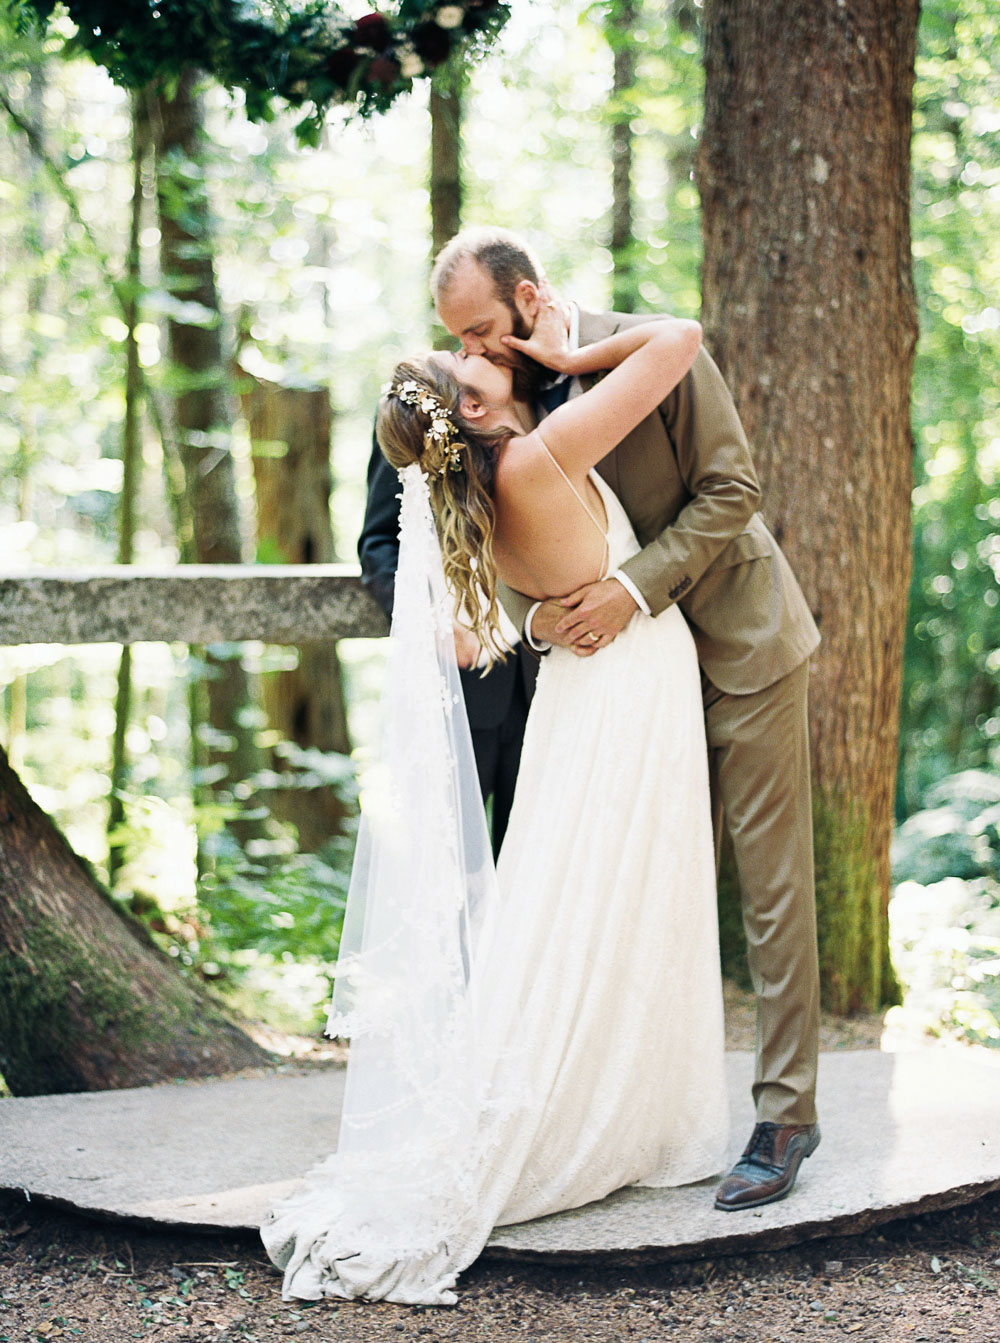 Bride and groom's first kiss at Wellspring Spa Wedding near Seattle